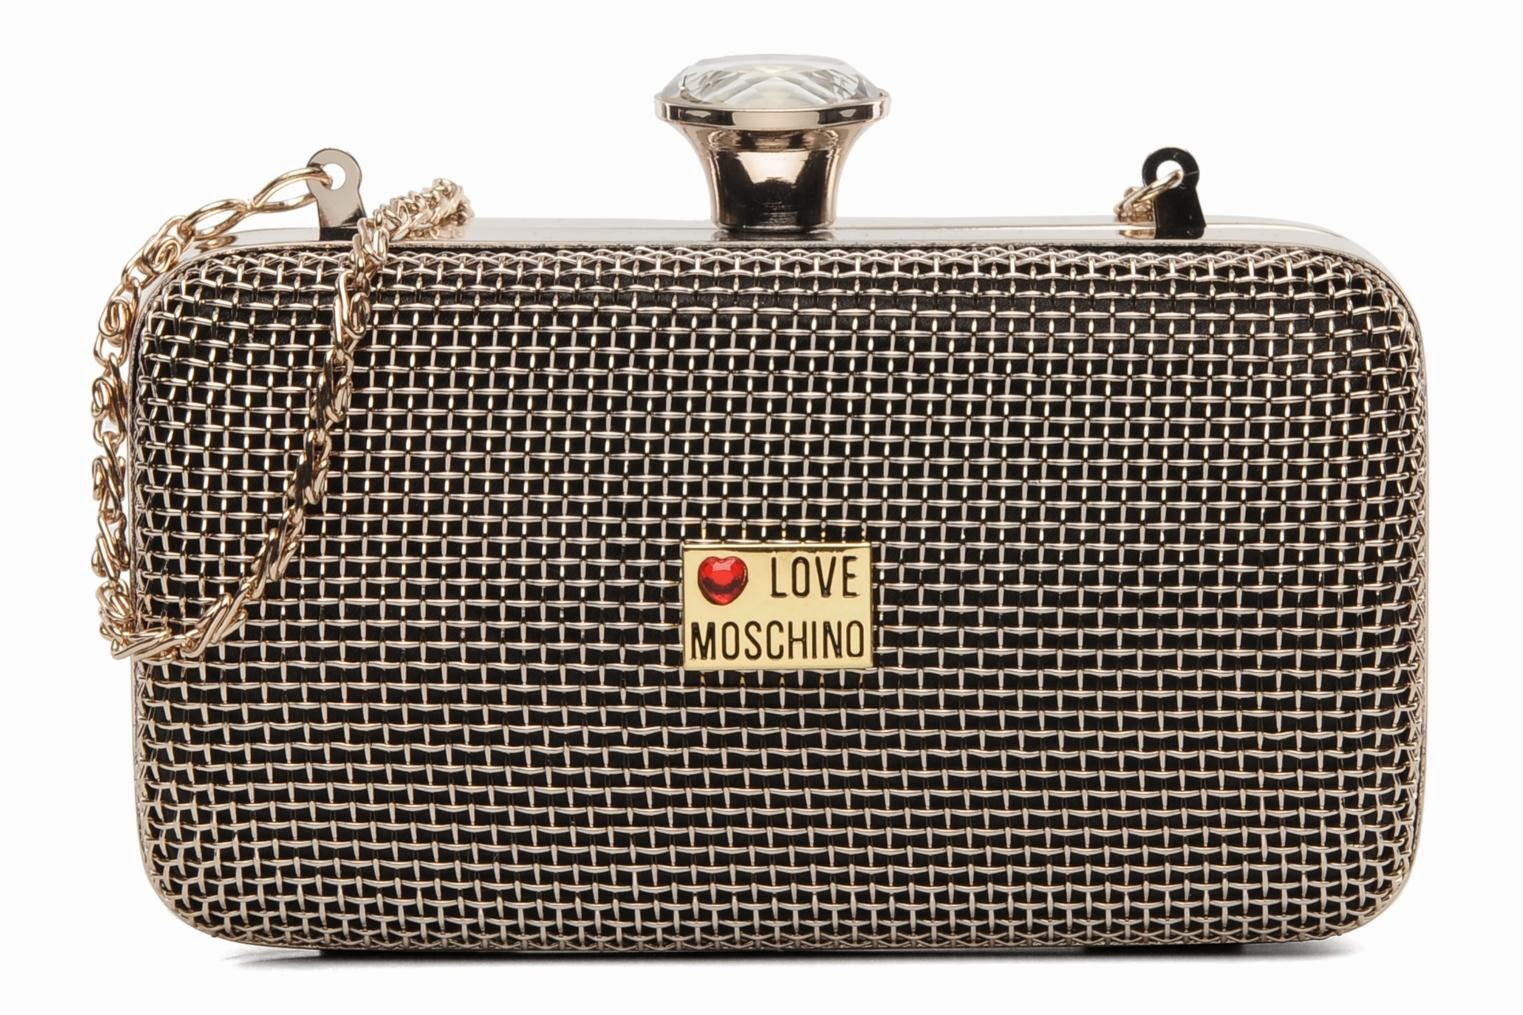 love moschino designer bag